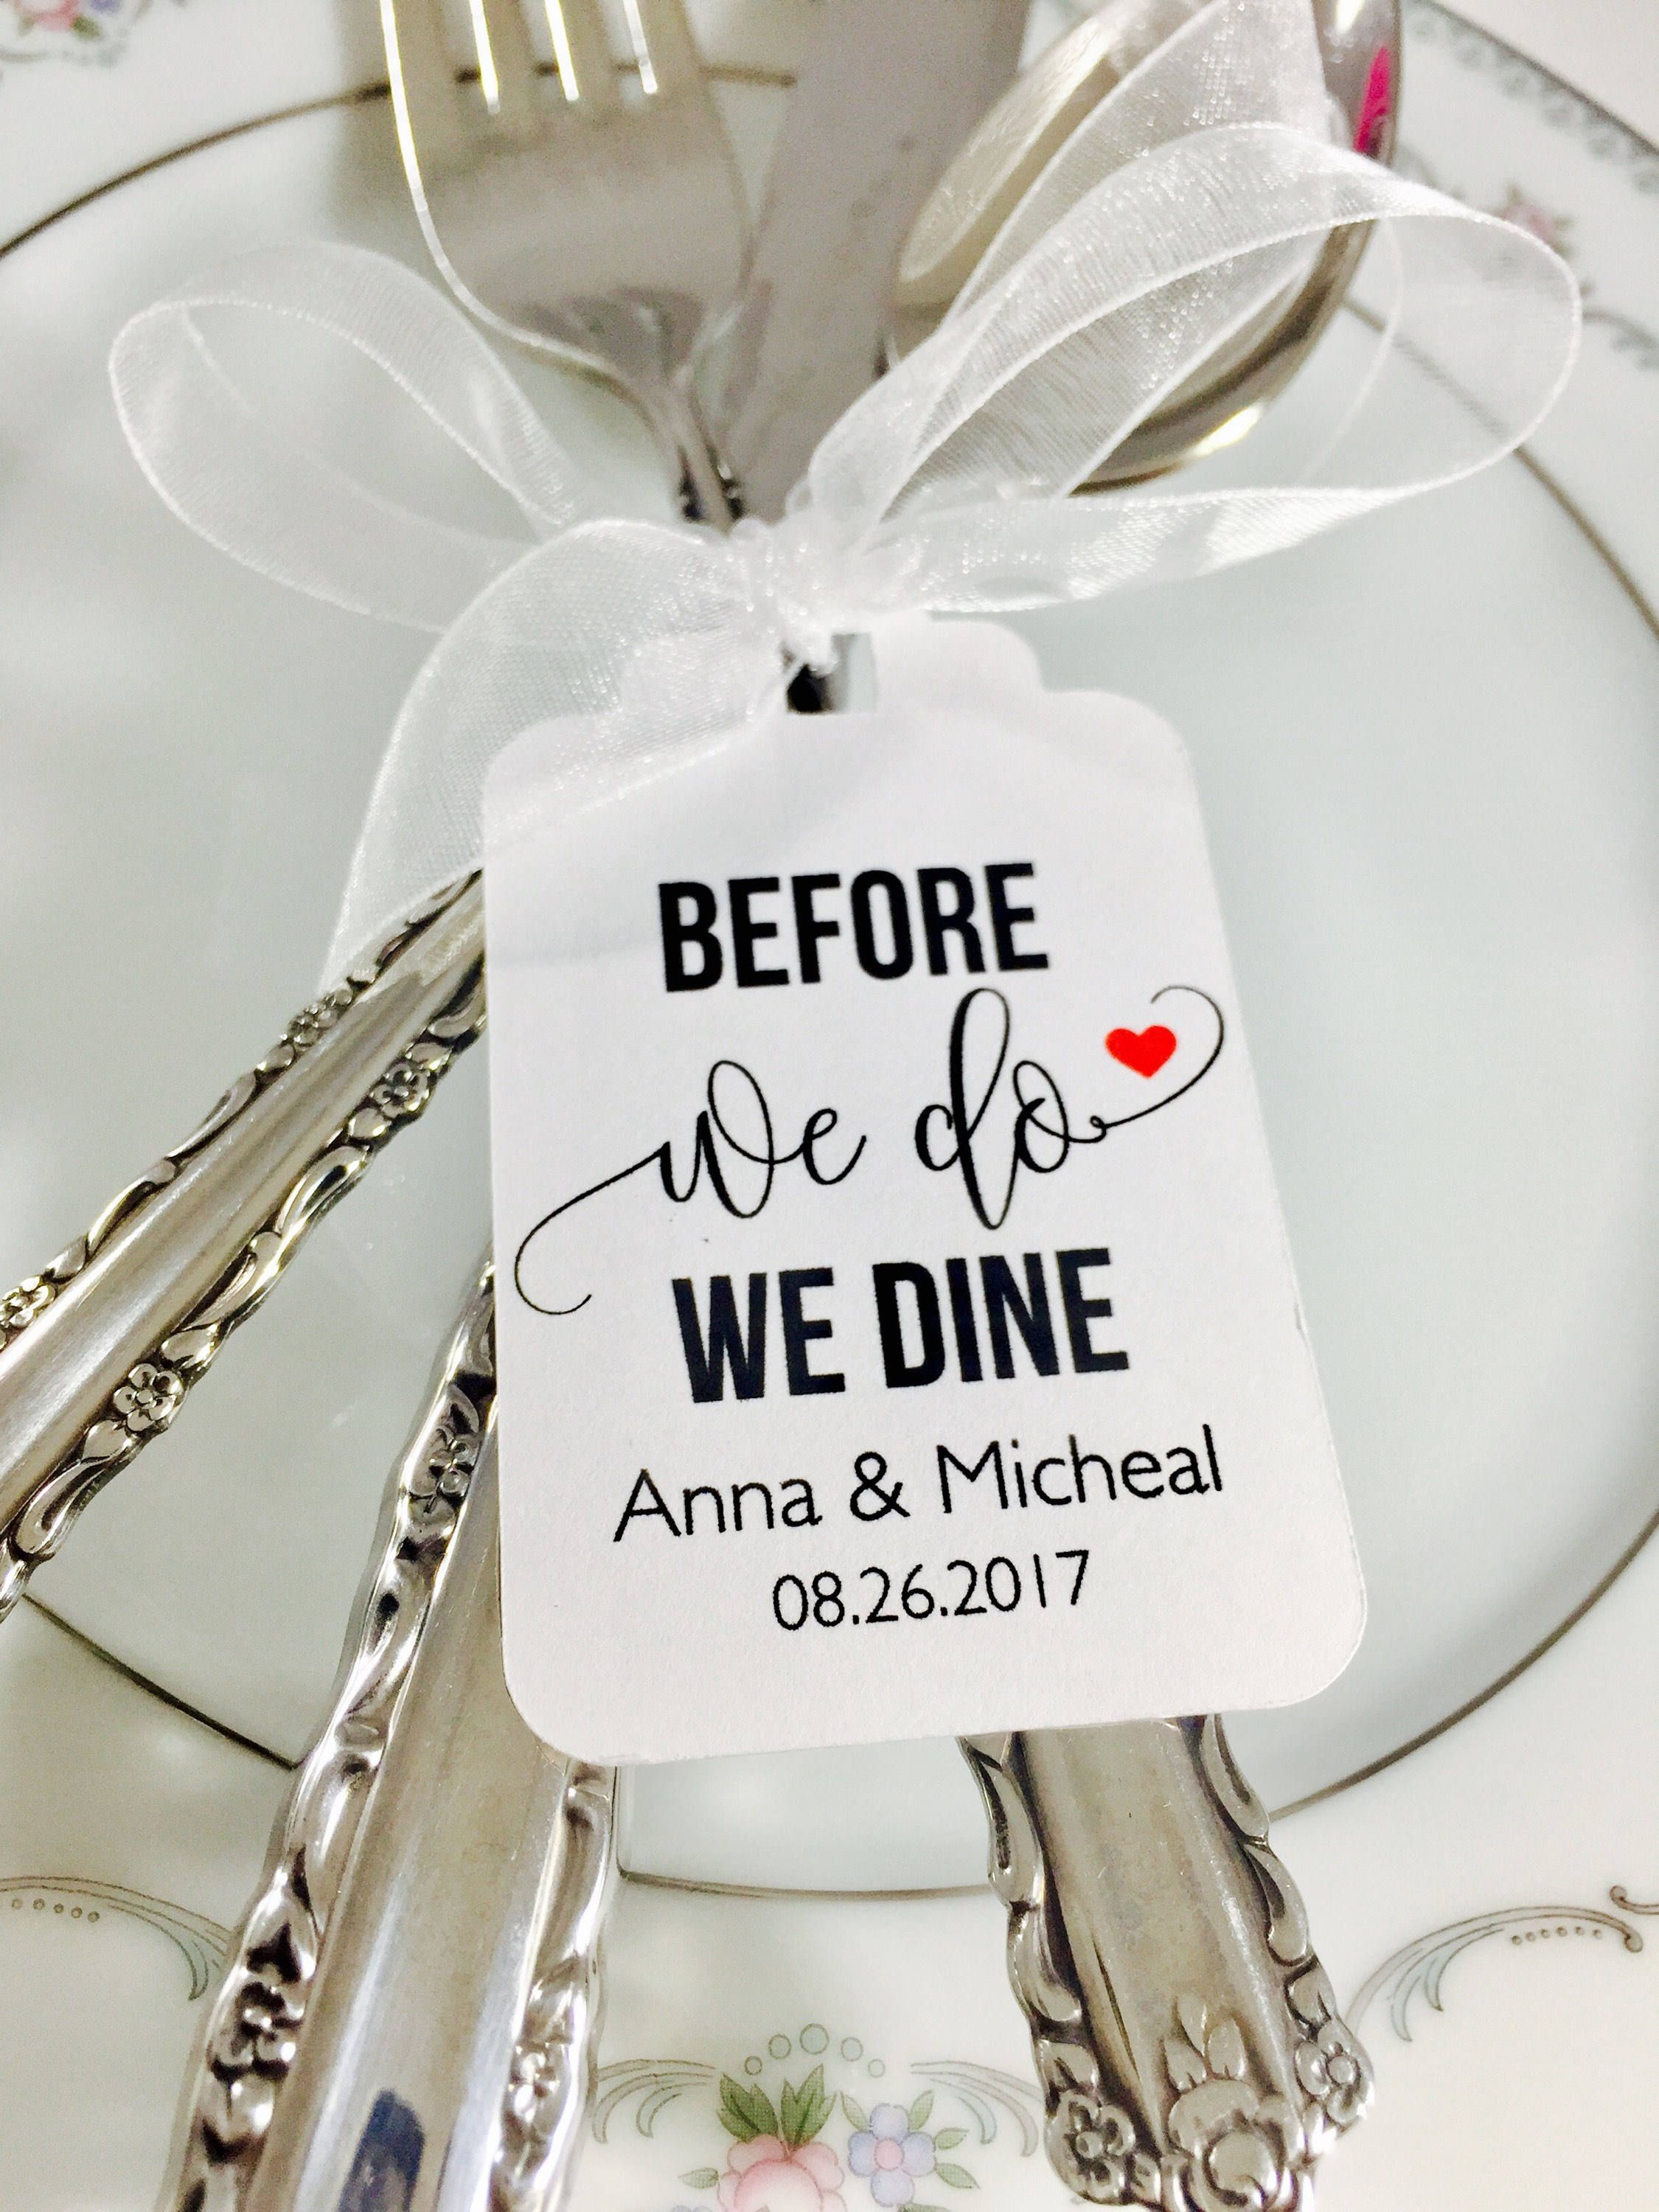 Wedding Rehearsal Dinner, Before We Do We Dine, Silverware Tags ...